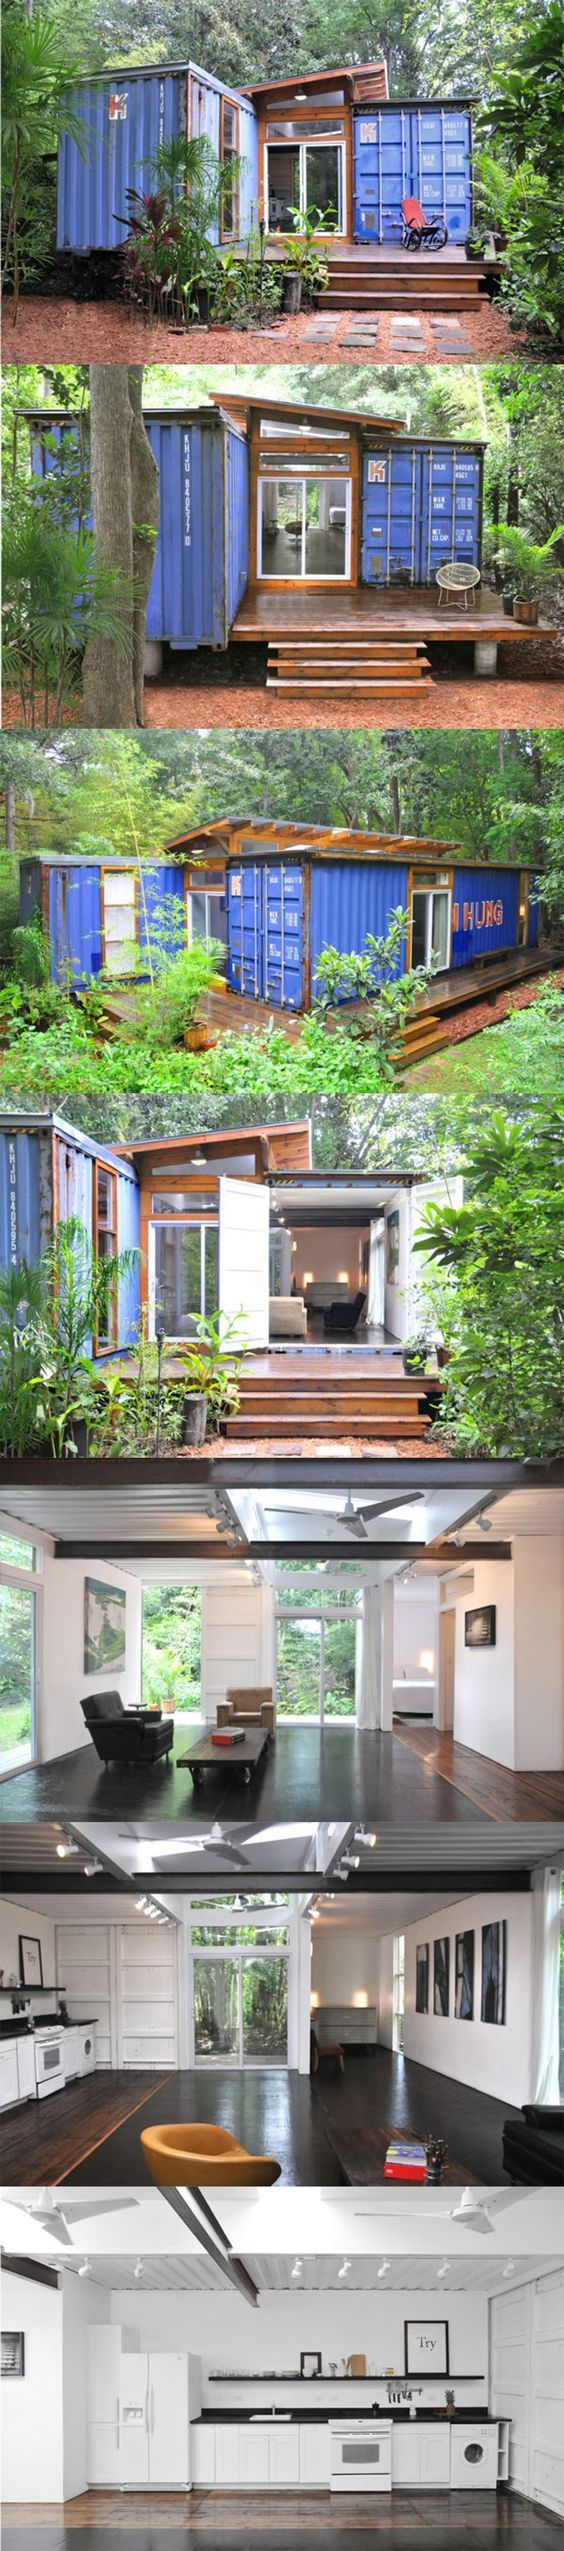 Best Kitchen Gallery: Artist Julio Garcia Builds A Light Filled Shipping Container Home In of Shipping Container Homes Build Piers on rachelxblog.com